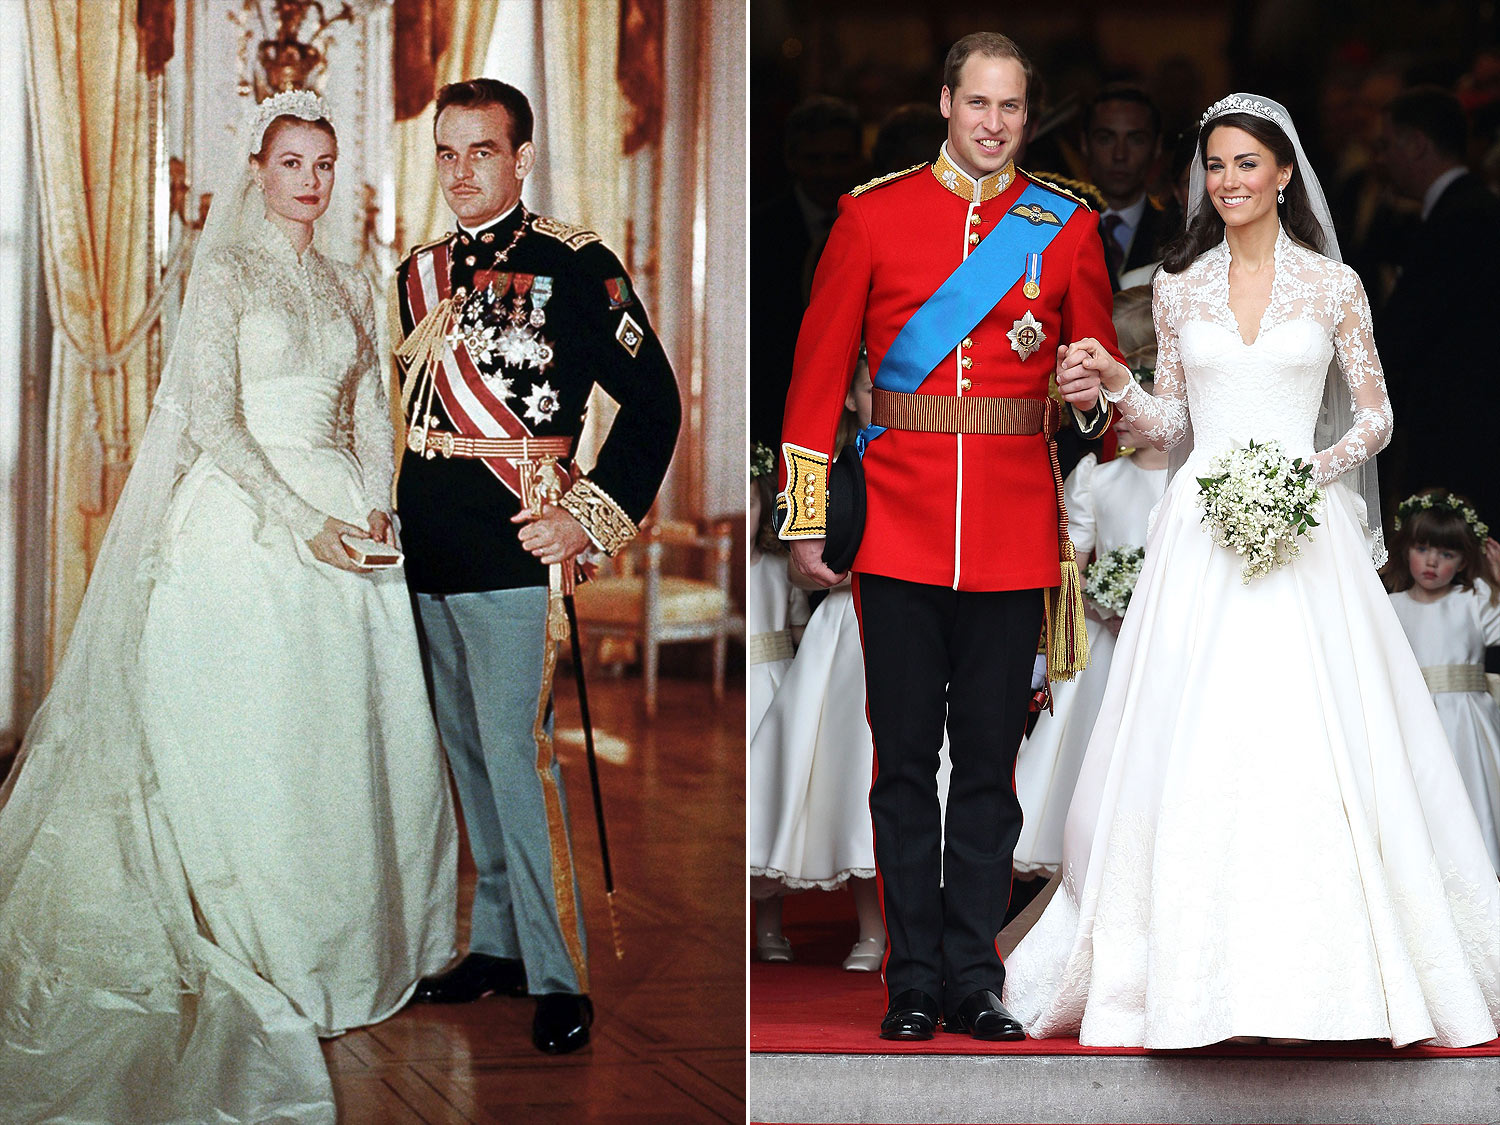 MONACO - APRIL 19: Portrait of Rainier III, Prince of Monaco to Princess Grace on their wedding day on April 19, 1956 in Monaco. (Photo by 3777/Gamma-Rapho via Getty Images)                                                  LONDON, ENGLAND - APRIL 29:  TRH Prince William, Duke of Cambridge and Catherine, Duchess of Cambridge smile following their marriage at Westminster Abbey on April 29, 2011 in London, England. The marriage of the second in line to the British throne was led by the Archbishop of Canterbury and was attended by 1900 guests, including foreign Royal family members and heads of state. Thousands of well-wishers from around the world have also flocked to London to witness the spectacle and pageantry of the Royal Wedding.  (Photo by Chris Jackson/Getty Images)